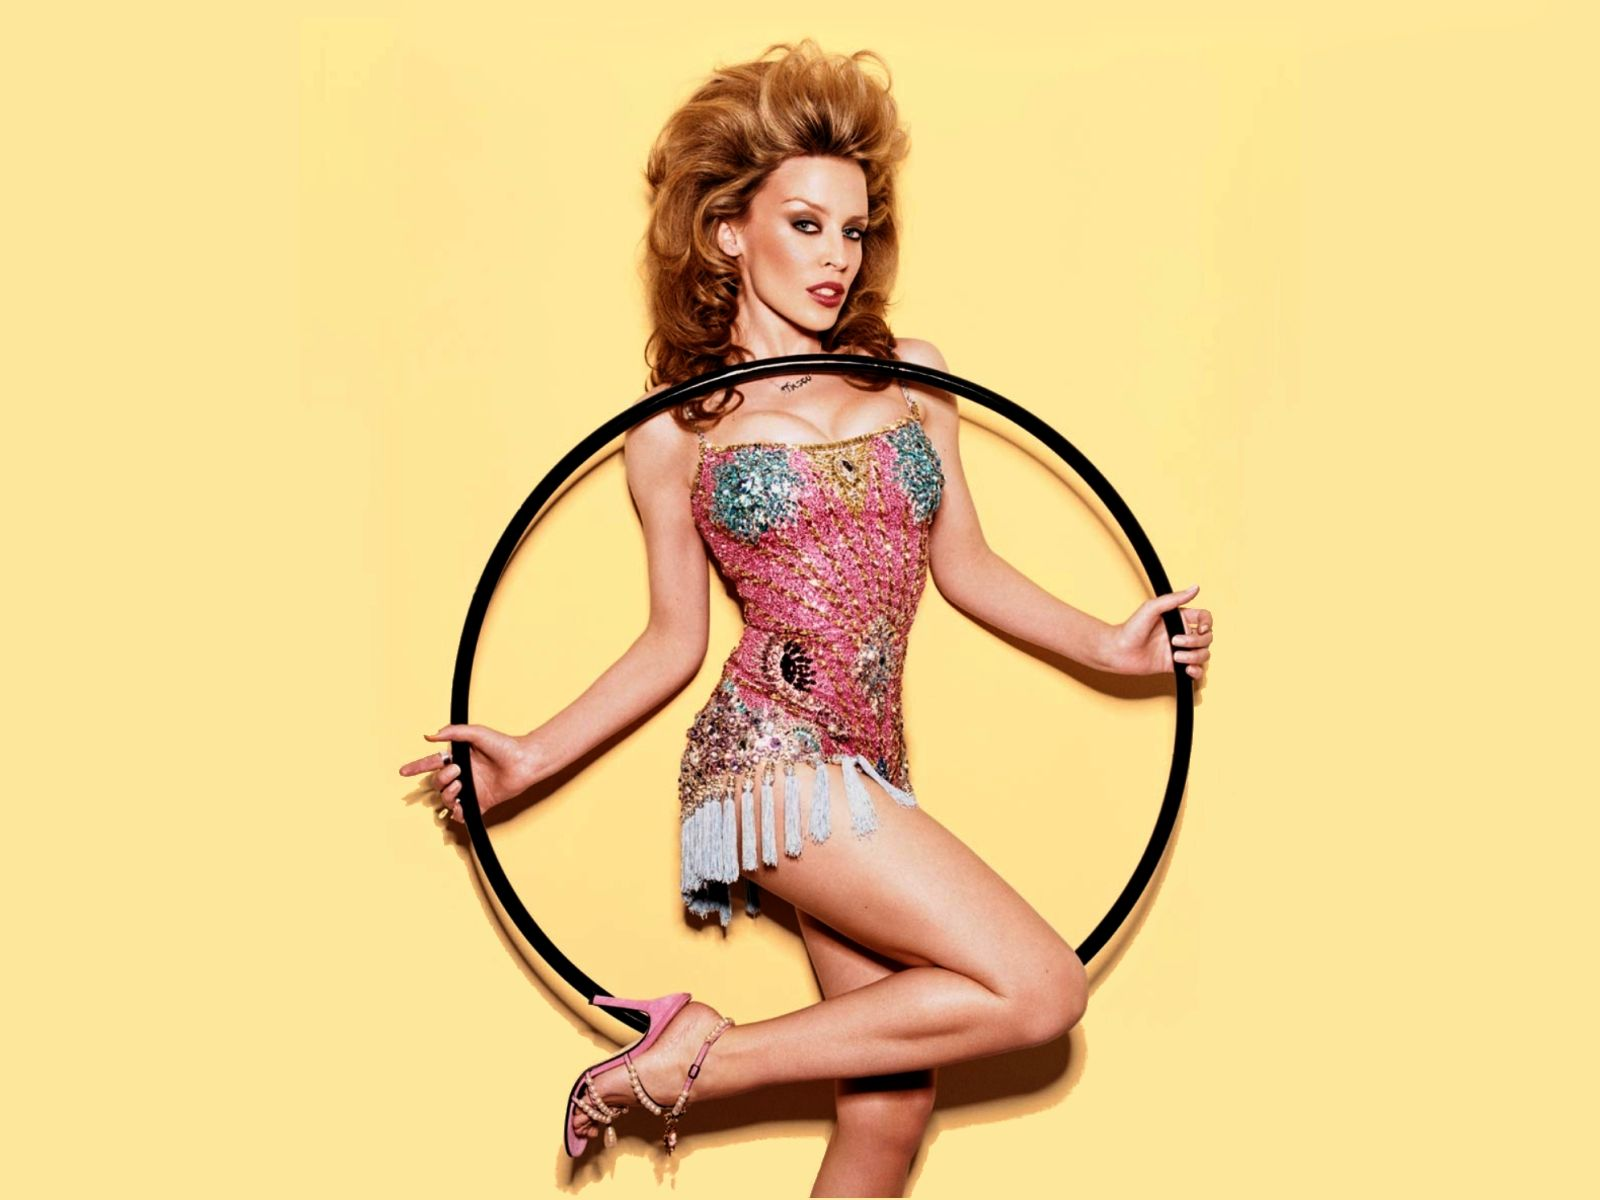 Singer kylie minogue survives and thrives